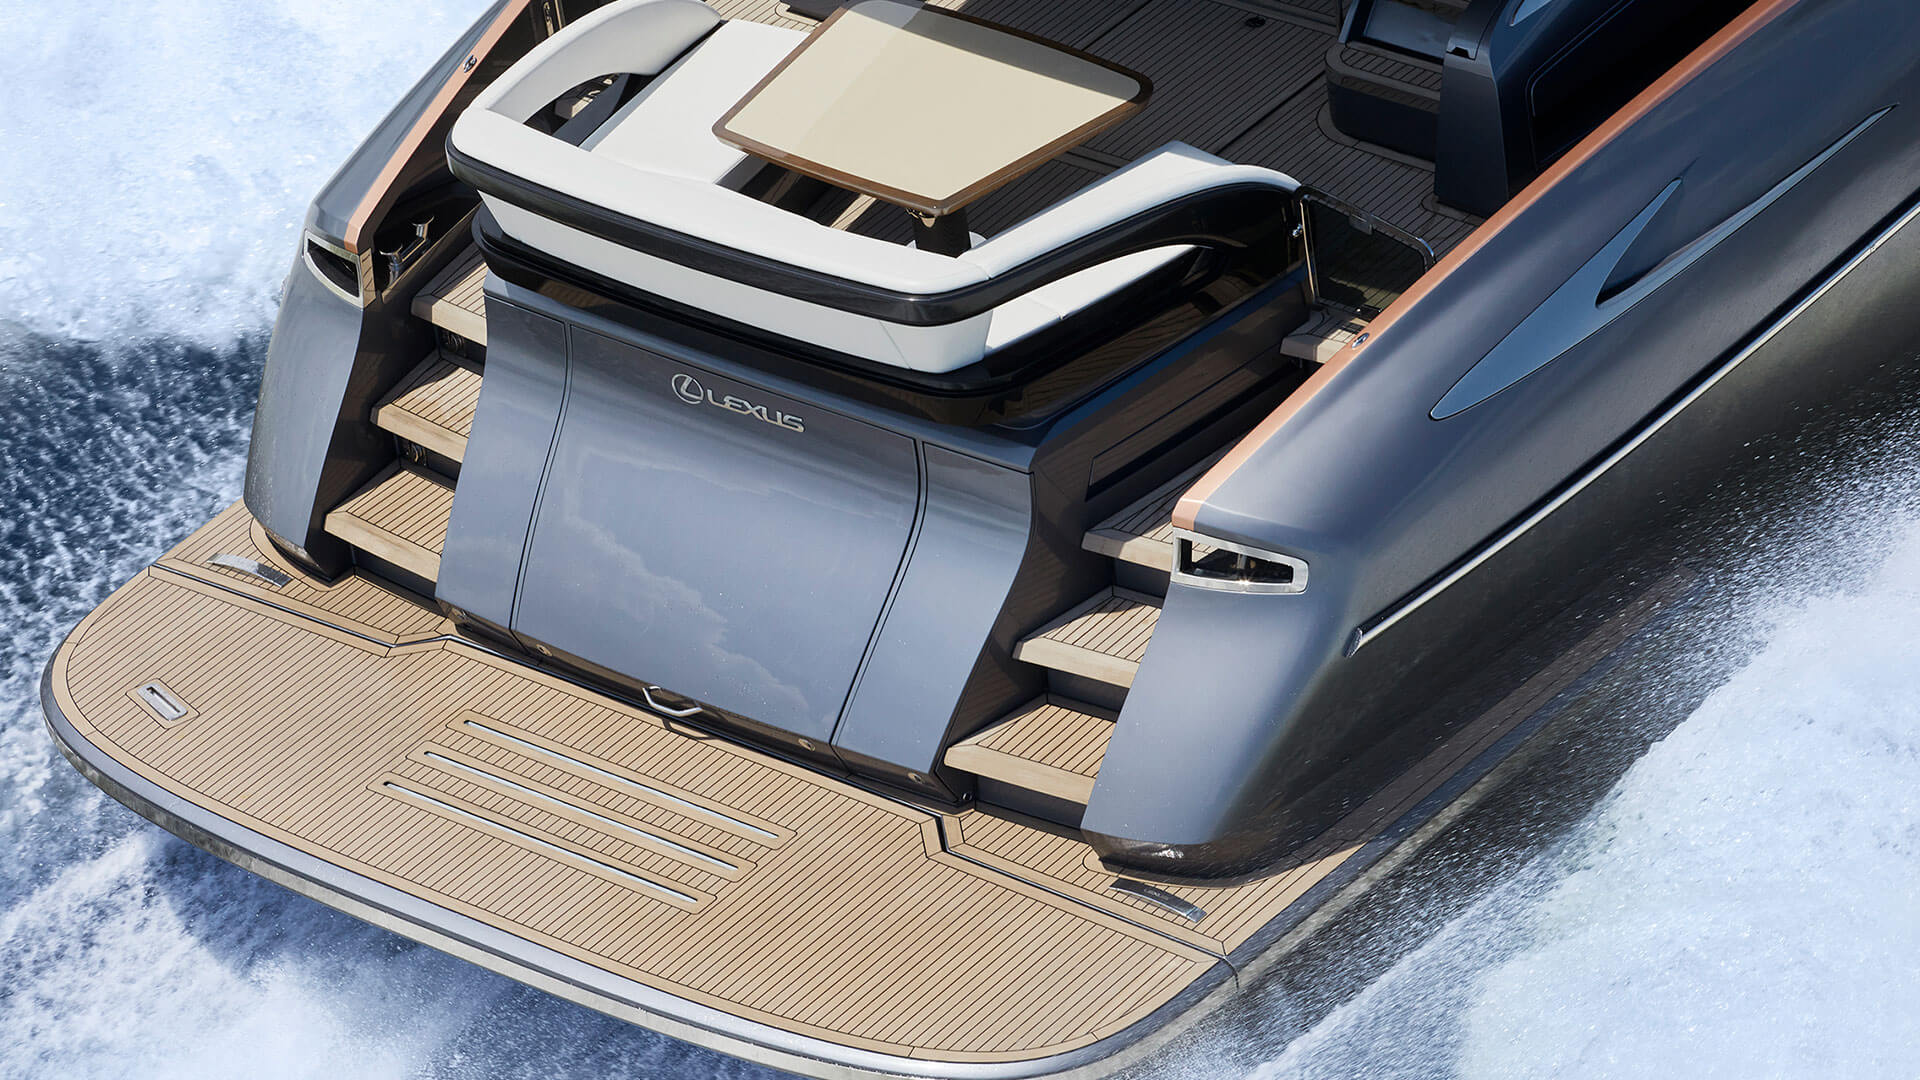 2020 lexus yacht ly 650 premiere gallery 04